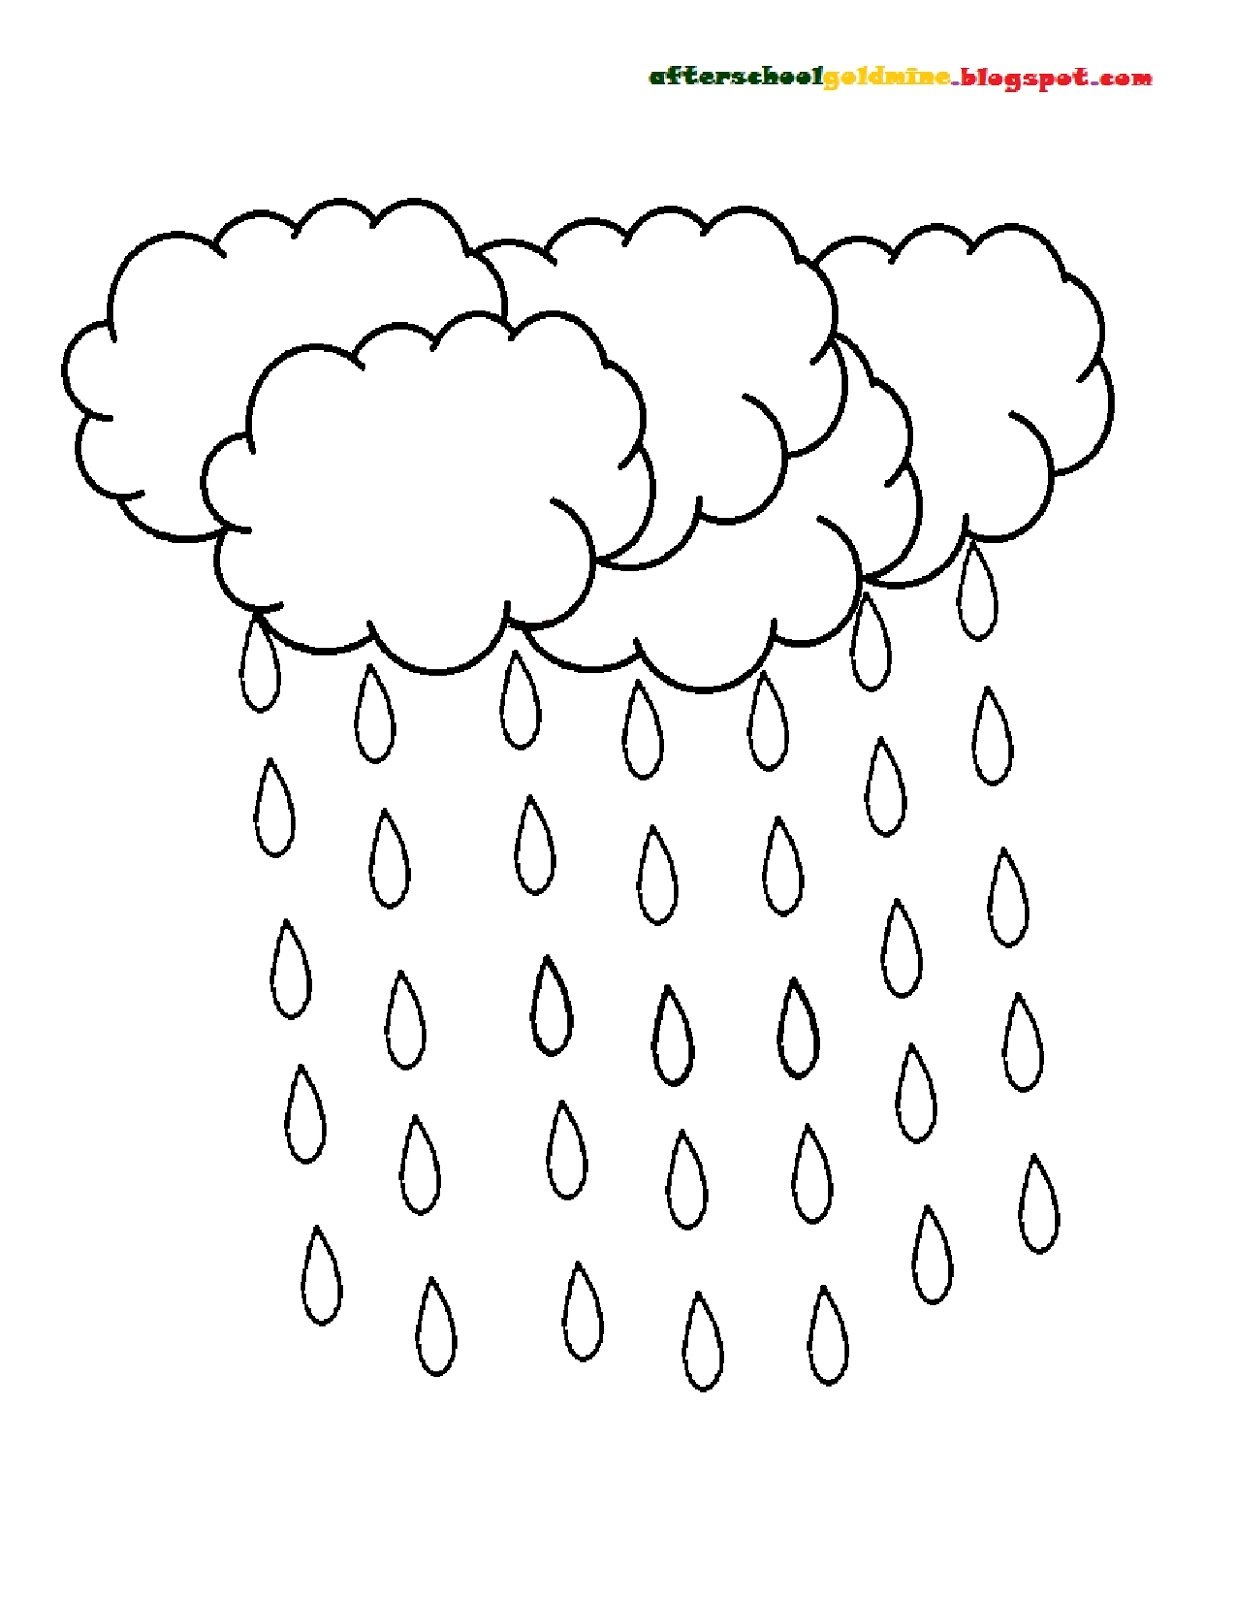 rain drop coloring pages - photo#28